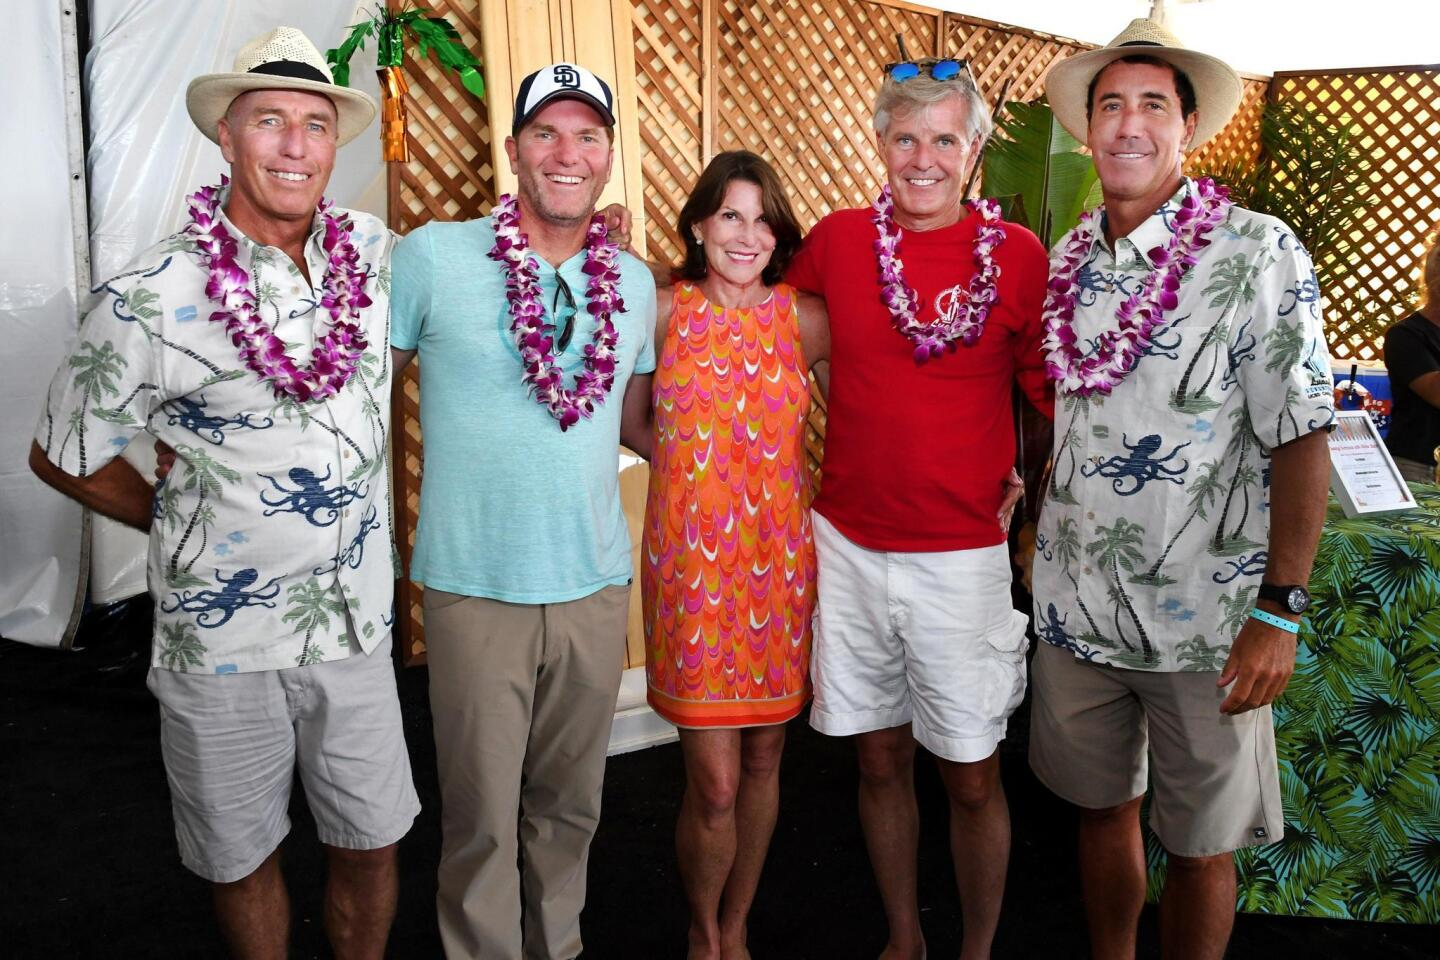 2017 Luau & Legends of Surfing Invitational raises funds for Moores Cancer Center at UCSD Health, La Jolla